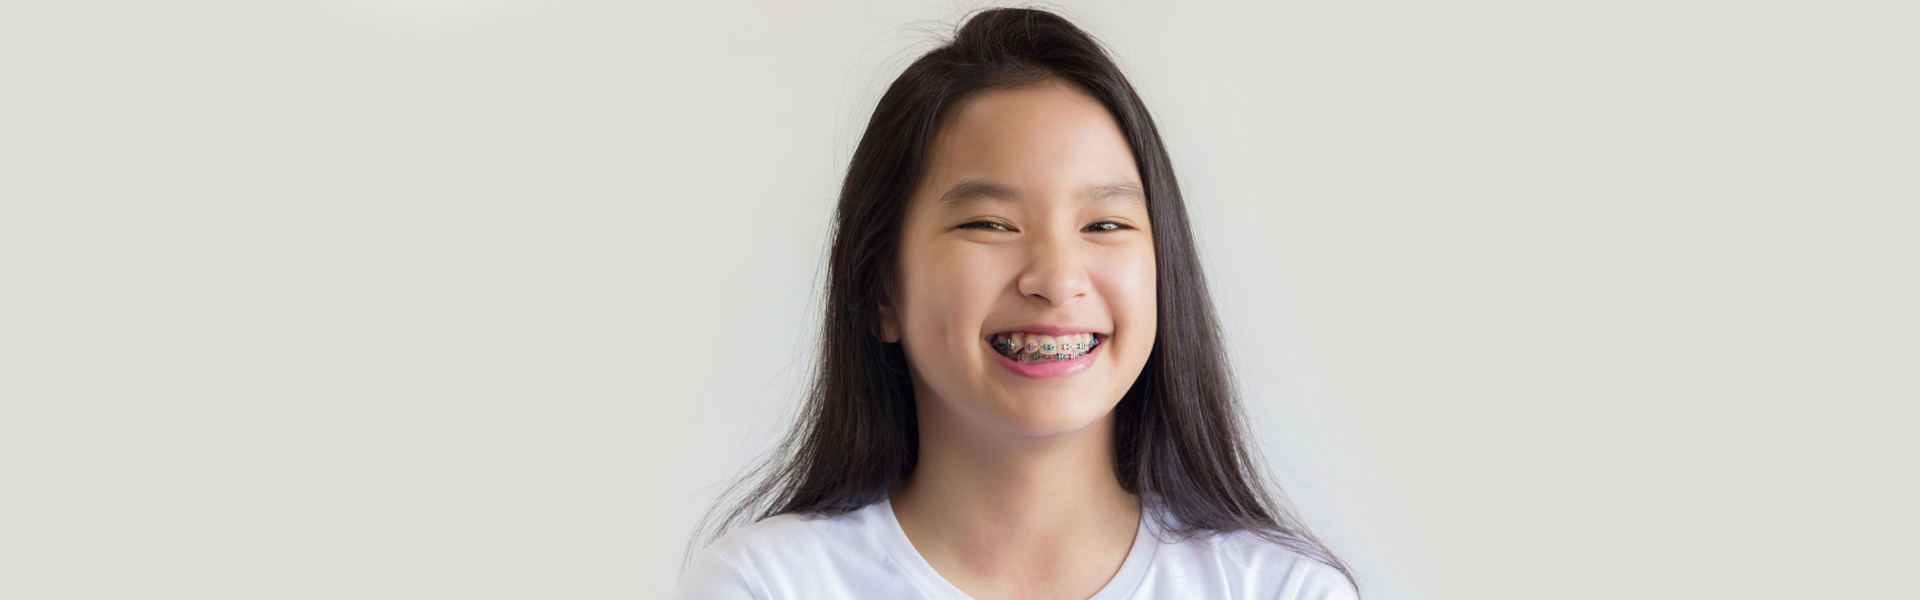 How ClearCorrect Braces Can Save Your Life